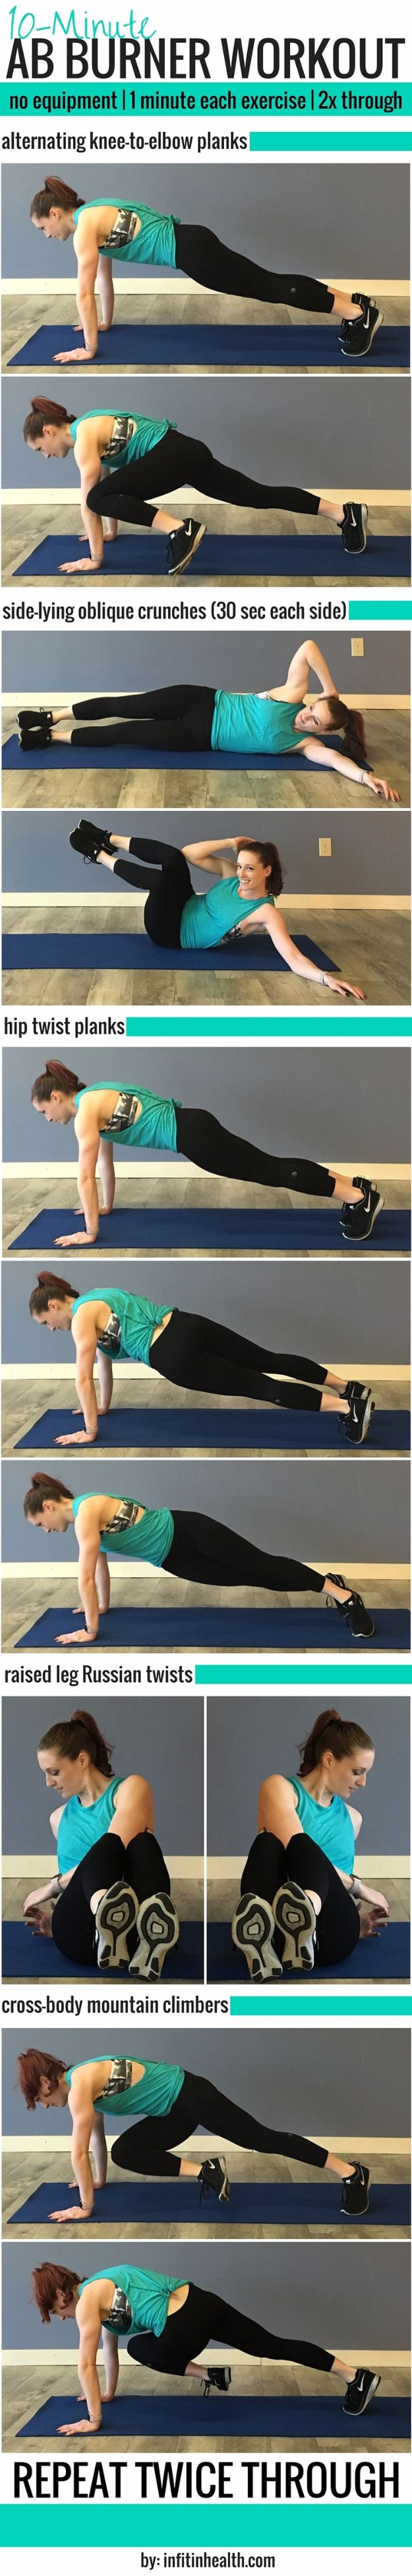 Best Quick At Home Workouts - 10 Minute Ab Burner Workout - Easy Tutorials and Work Out Ideas for Strength Training and Exercises - Step by Step Tutorials for Butt Workouts, Abs Tummy and Stomach, Legs, Arms, Chest and Back - Fast 5 and 10 Minute Workouts You Can Do On Your Lunch Break, In Car, in Hotel #exercise #health